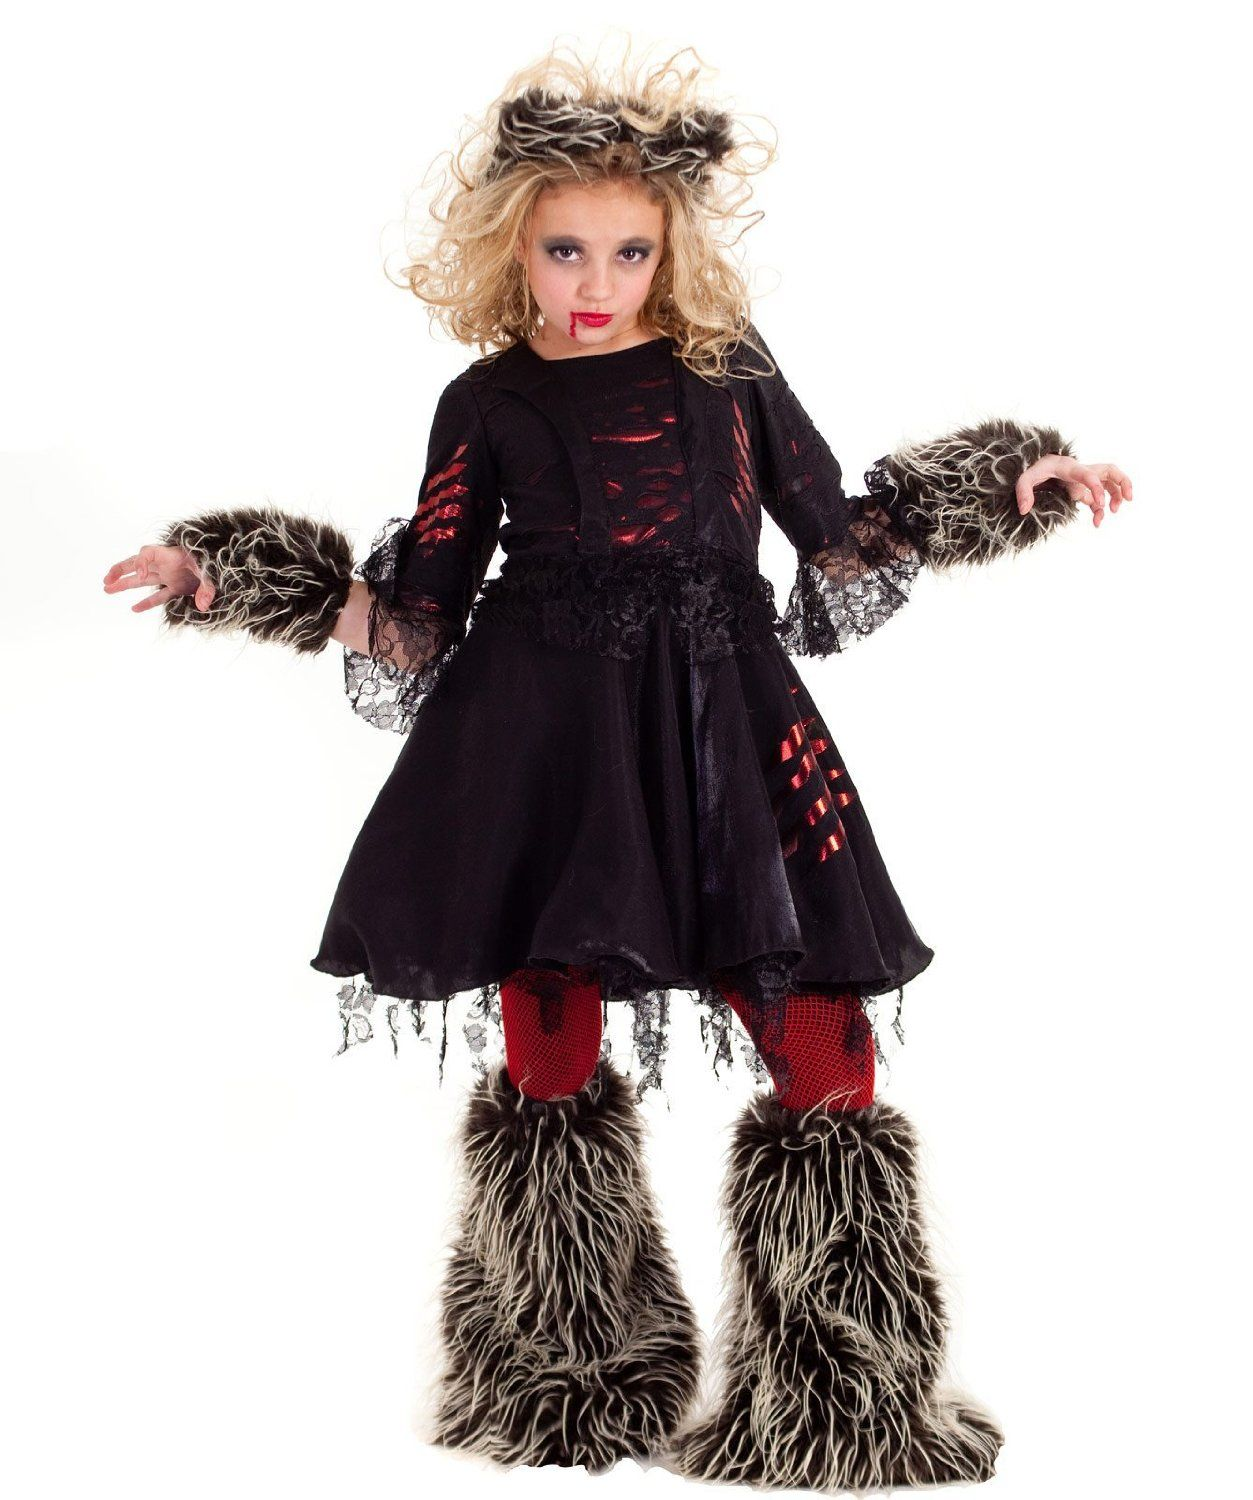 wolf costume child google search - Wolf Costume Halloween